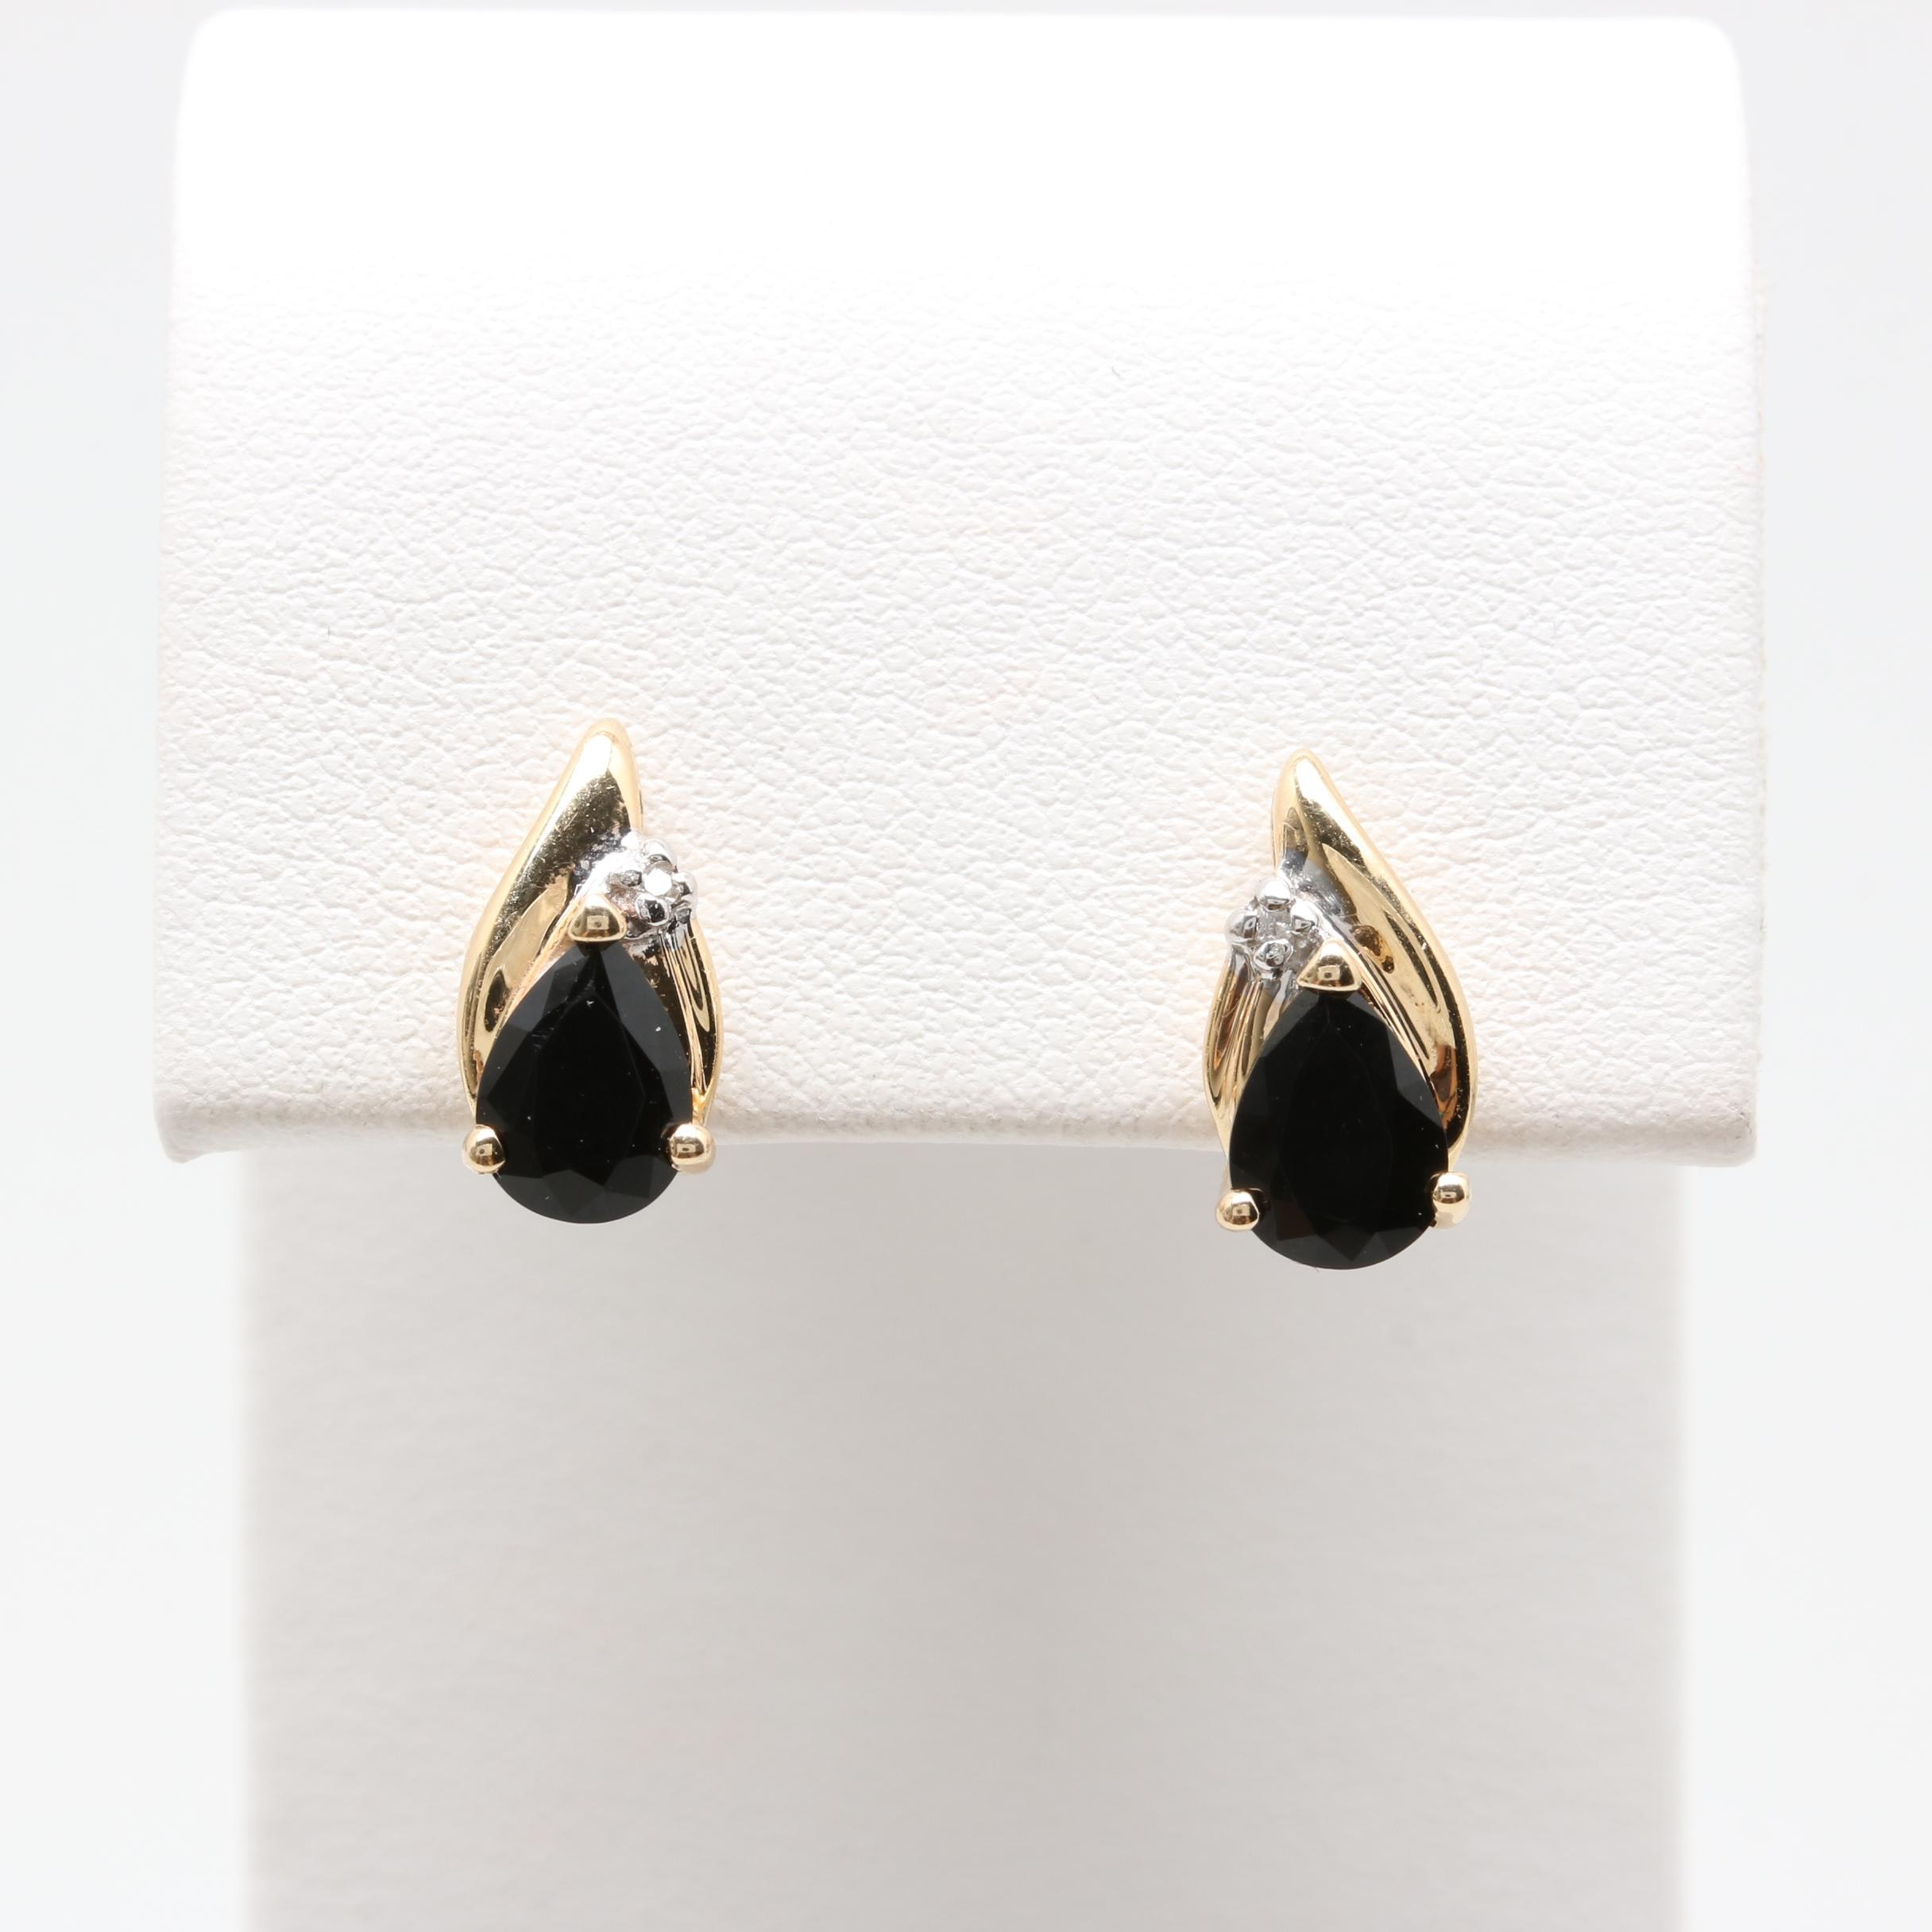 Alwand Vahan 14K Yellow Gold Black Onyx and Diamond Post Earrings